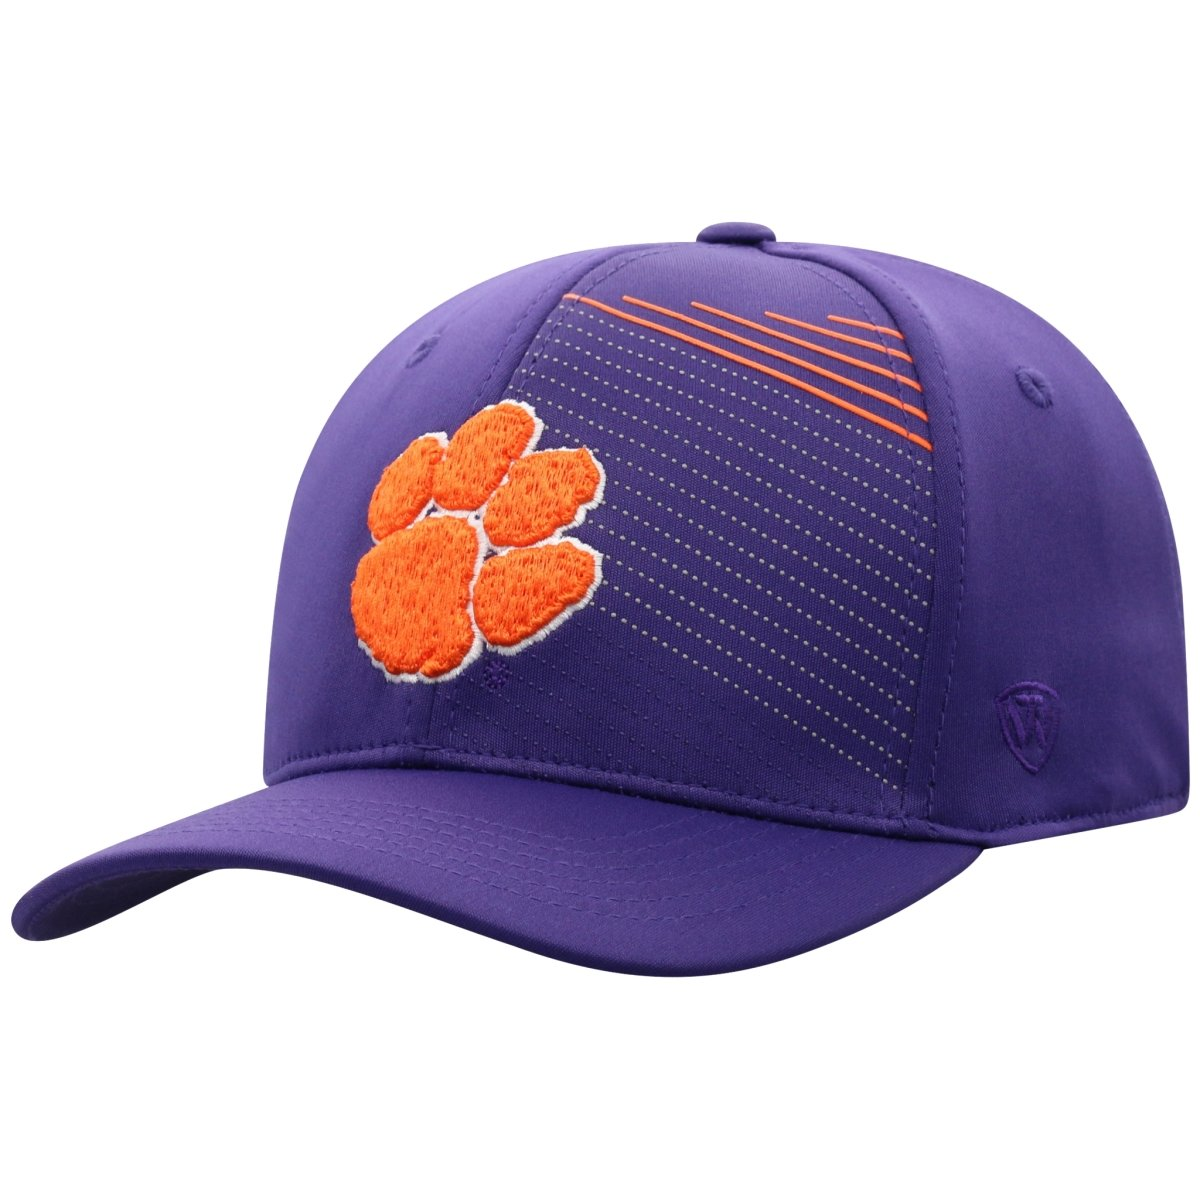 Top of the World Clemson Tigers Paw - Angles Purple Flex Fit Hat - Mr. Knickerbocker